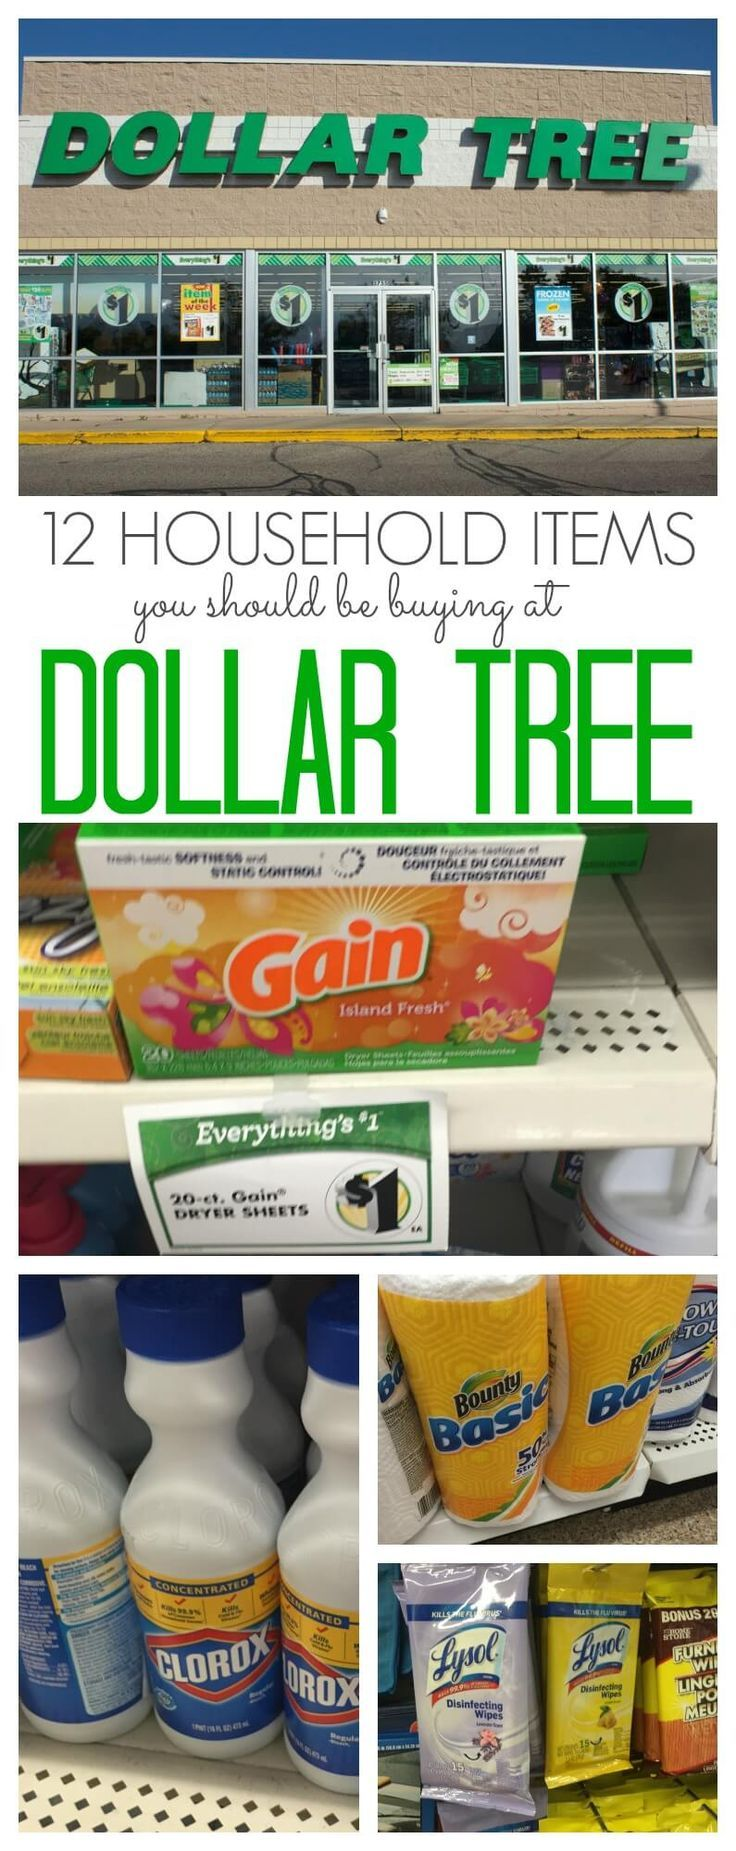 12 Household Items You Should Buy at the Dollar Tree! Here are some ...